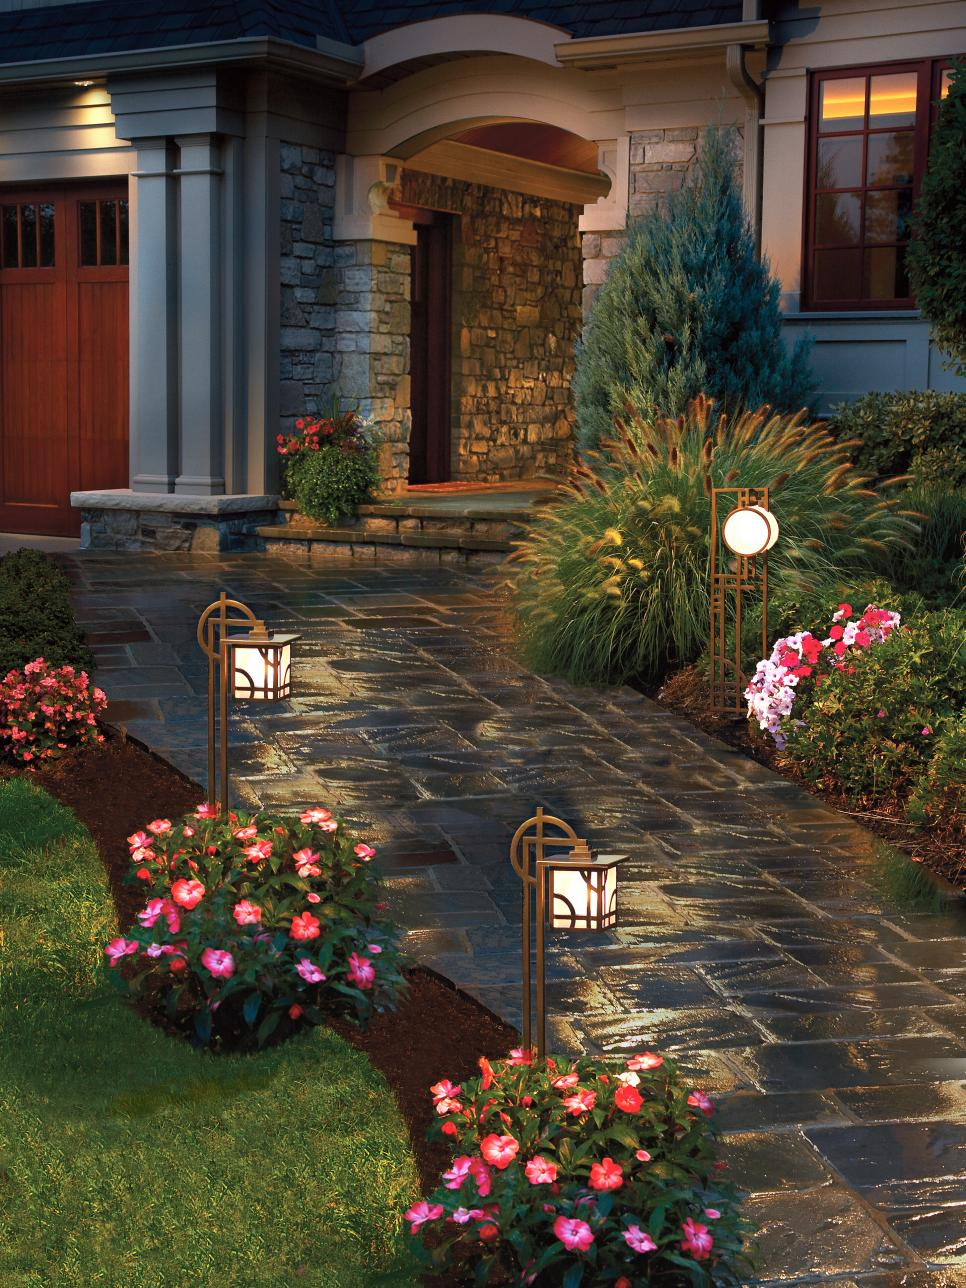 CI-kichler-lighting_stake-landscape-lighting-path5_s3x4.jpg.rend.hgtvcom.966.1288